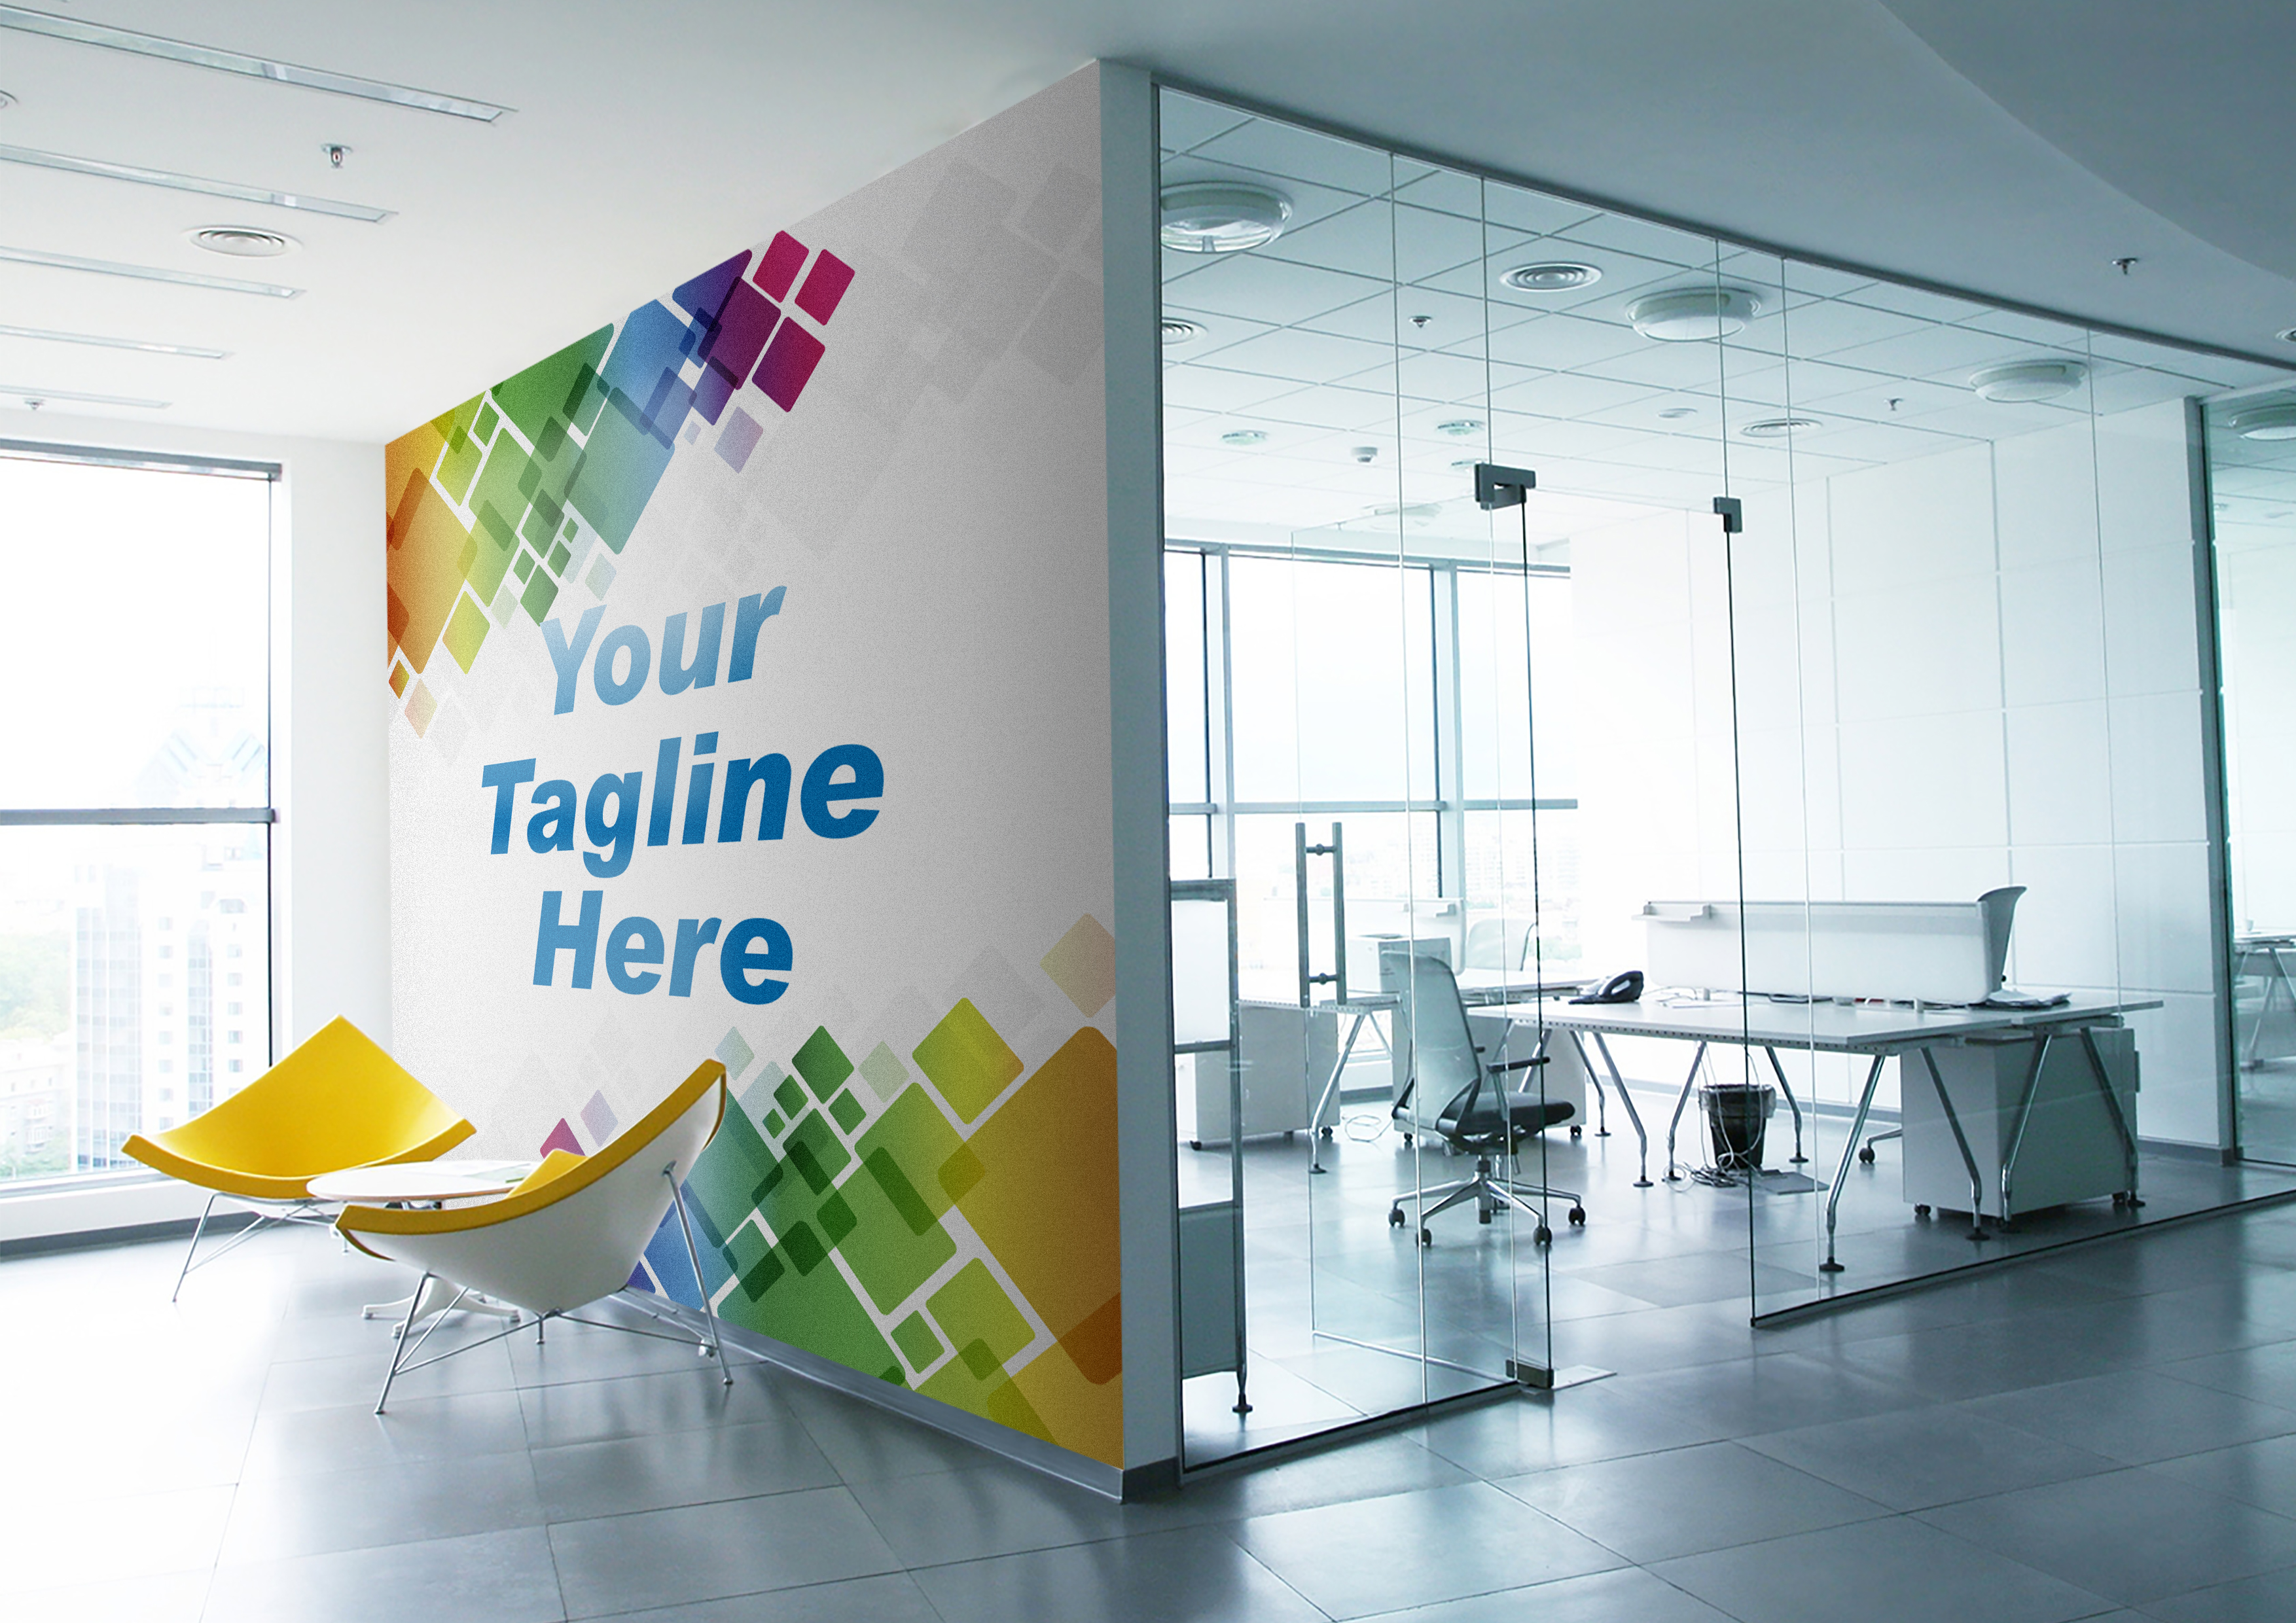 Display your logo or Message on walls mockups 4 designs